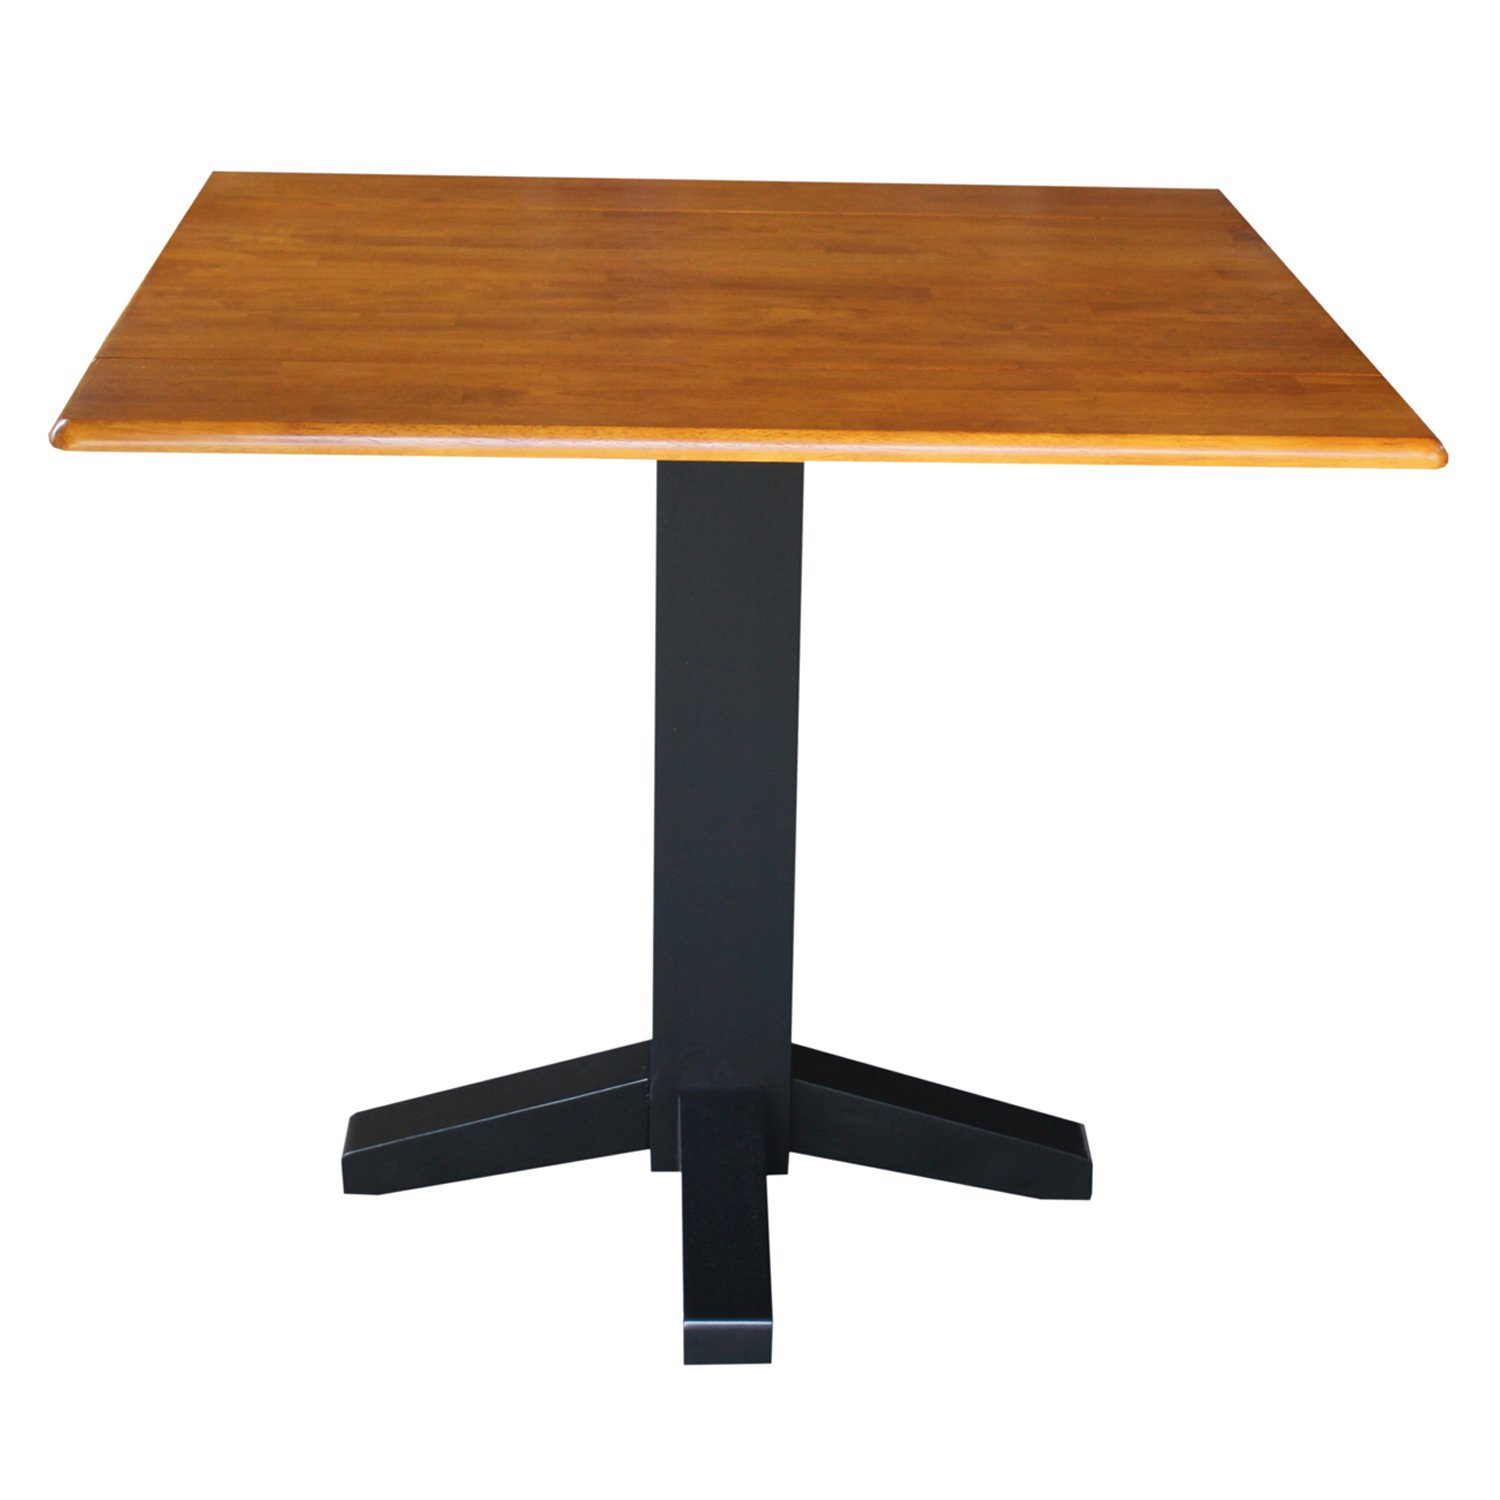 International Concepts Square Dual Drop Leaf Dining Table, 36-Inch, Black Cherry